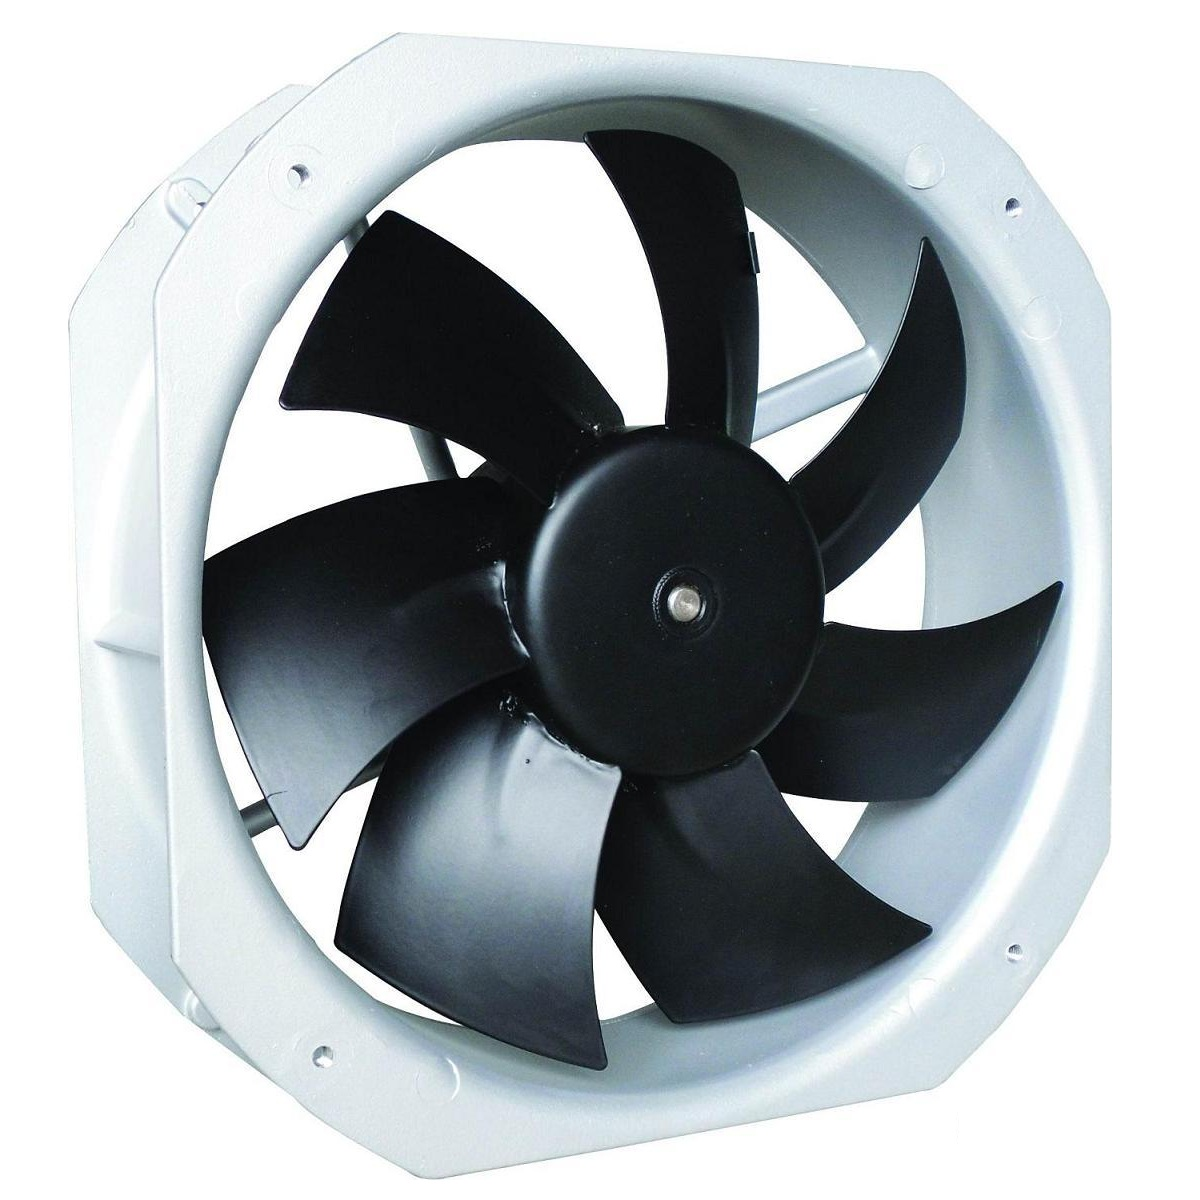 Axial blower impeller